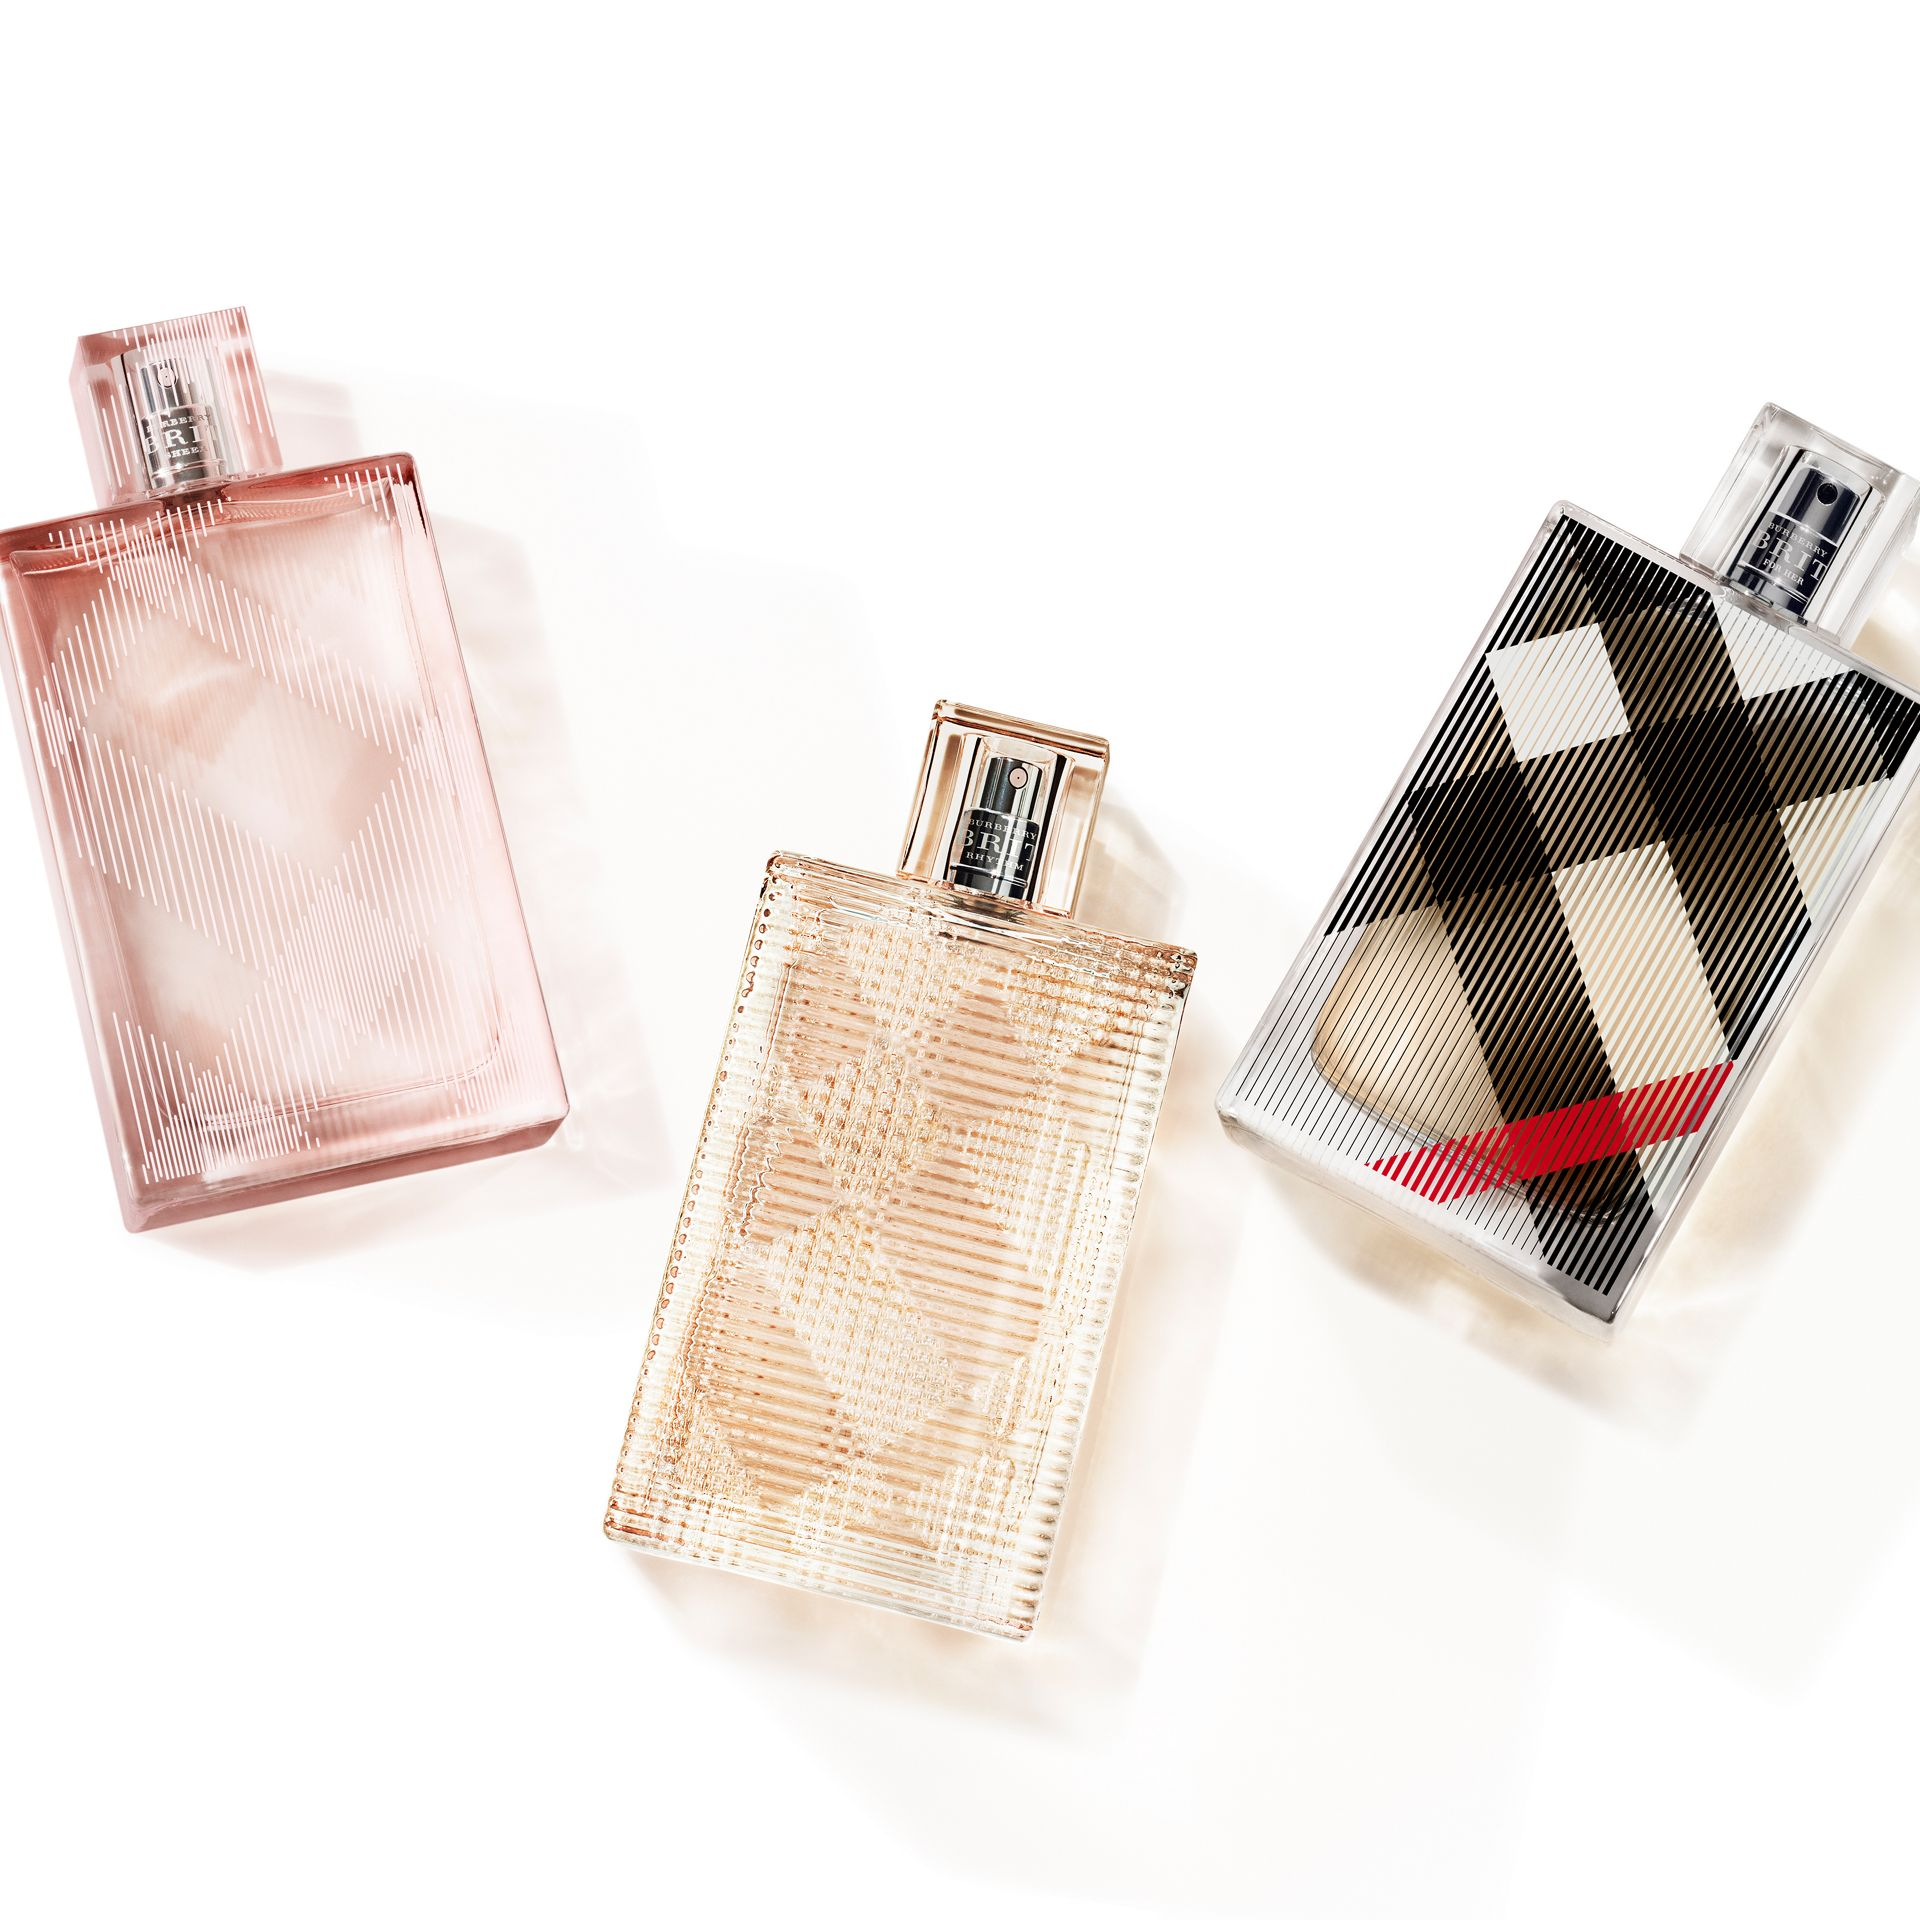 Burberry Brit for Her Eau de Parfum Set in Pink - Women | Burberry United Kingdom - gallery image 2